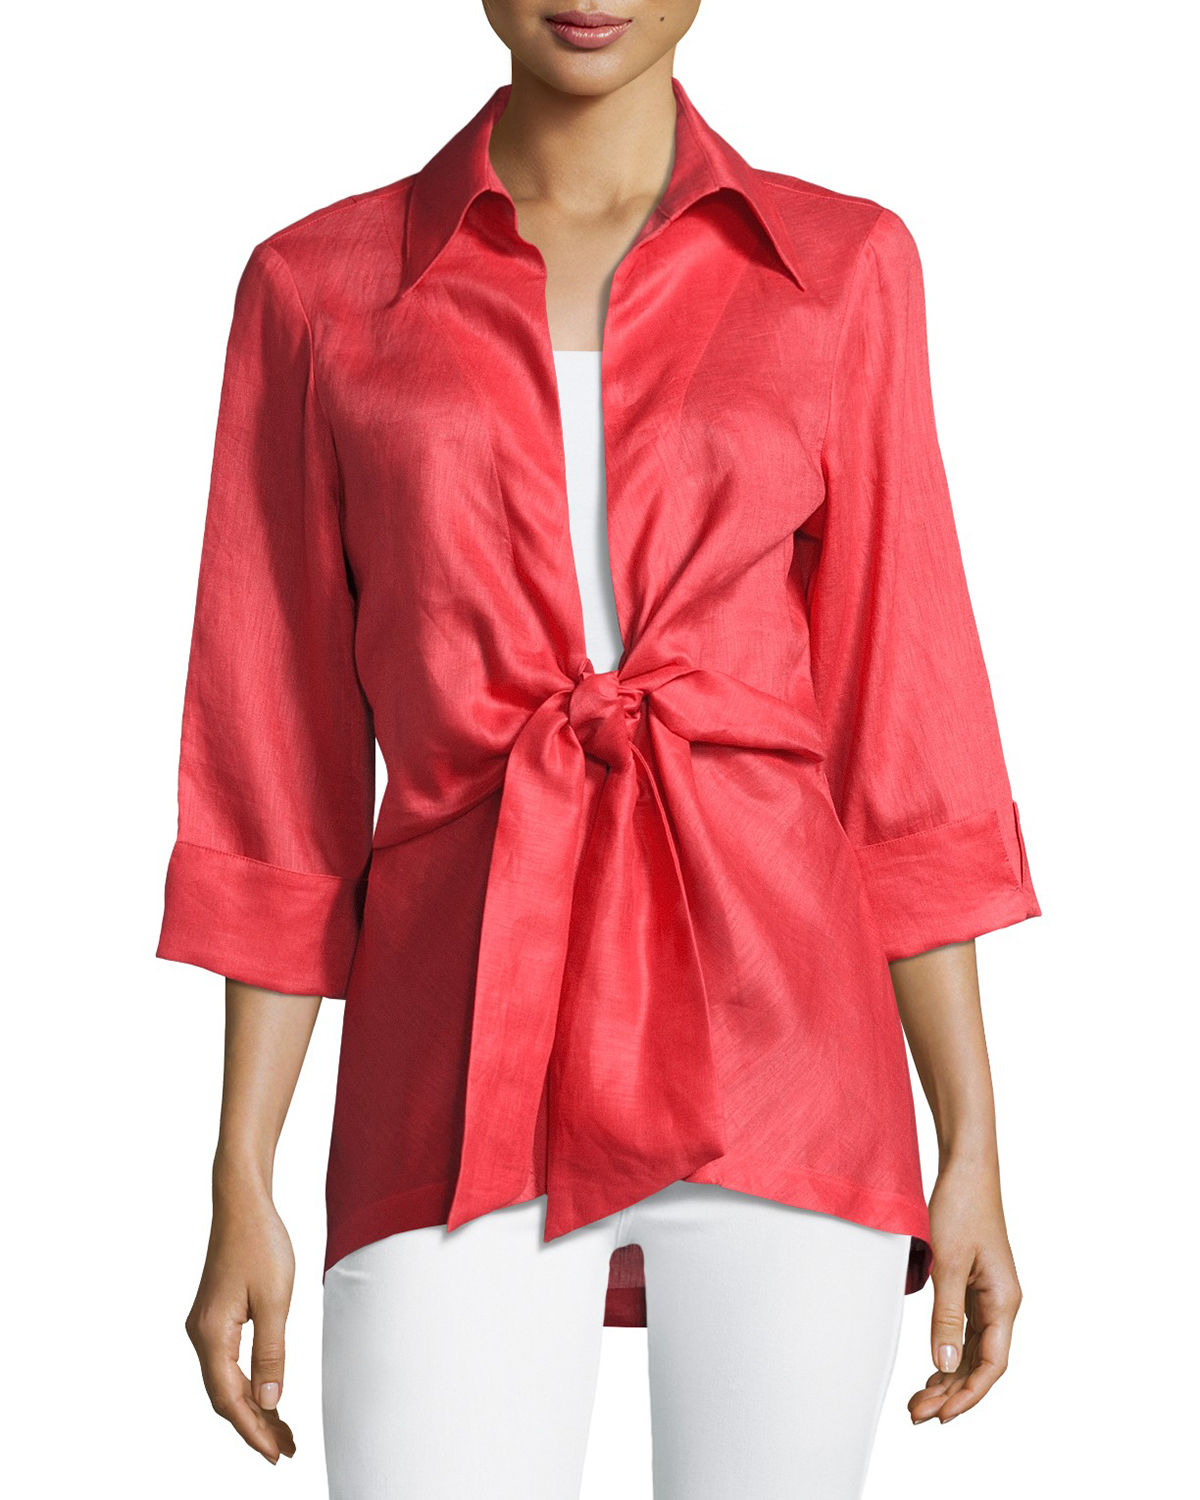 Structured Cotton Blouses for Spring & Summer Red Tie Front Jacket Style